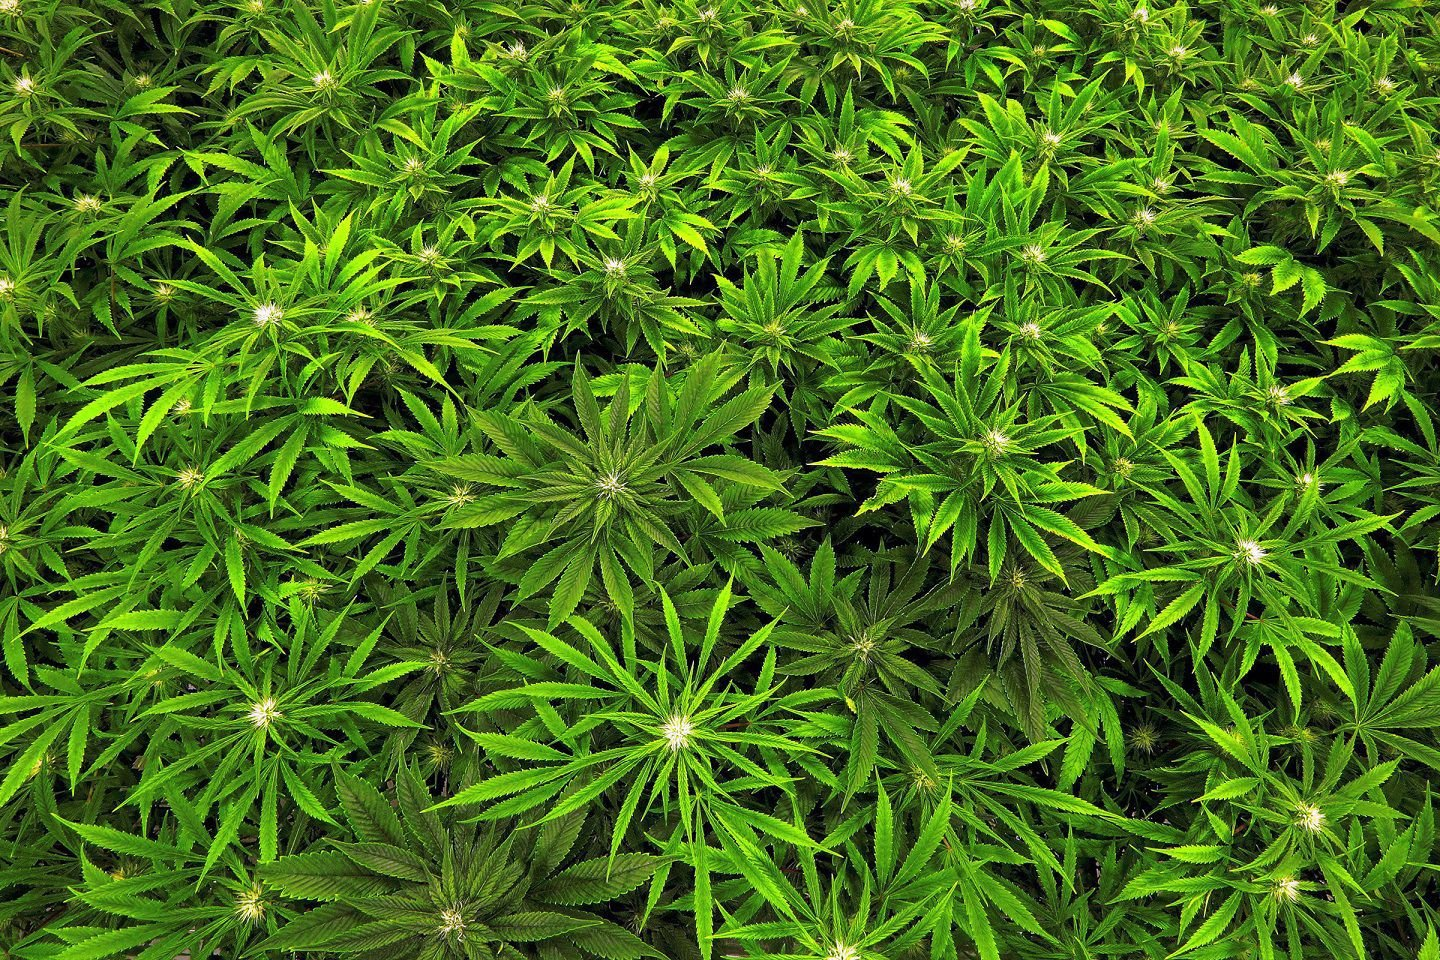 Medical marijuana growing site, dispensing center coming to Schenectady County